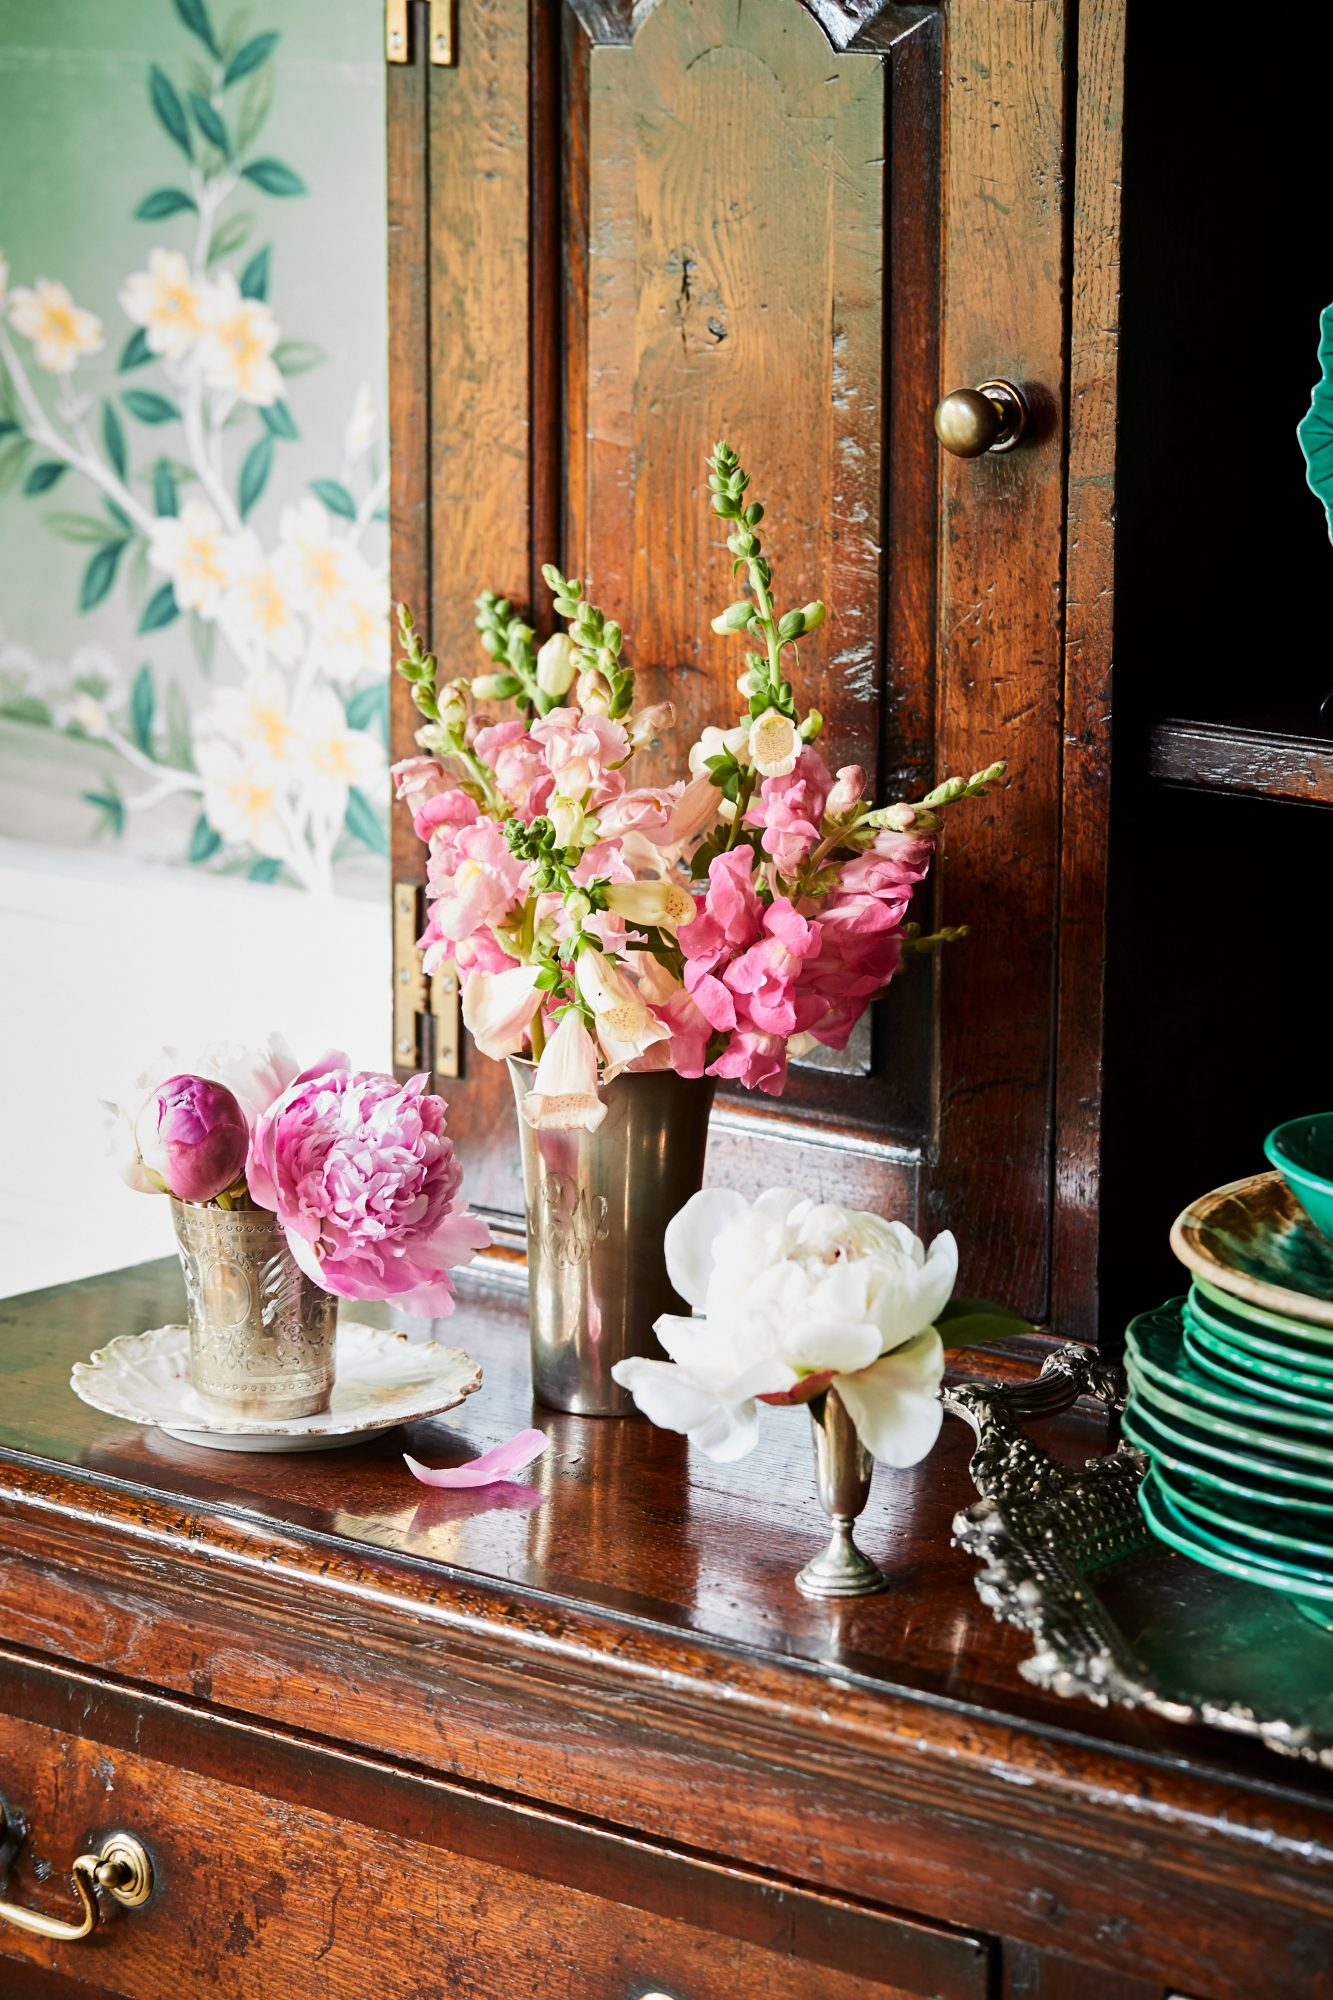 Peony, Foxglove, and Snapdragons arranged in silver containers